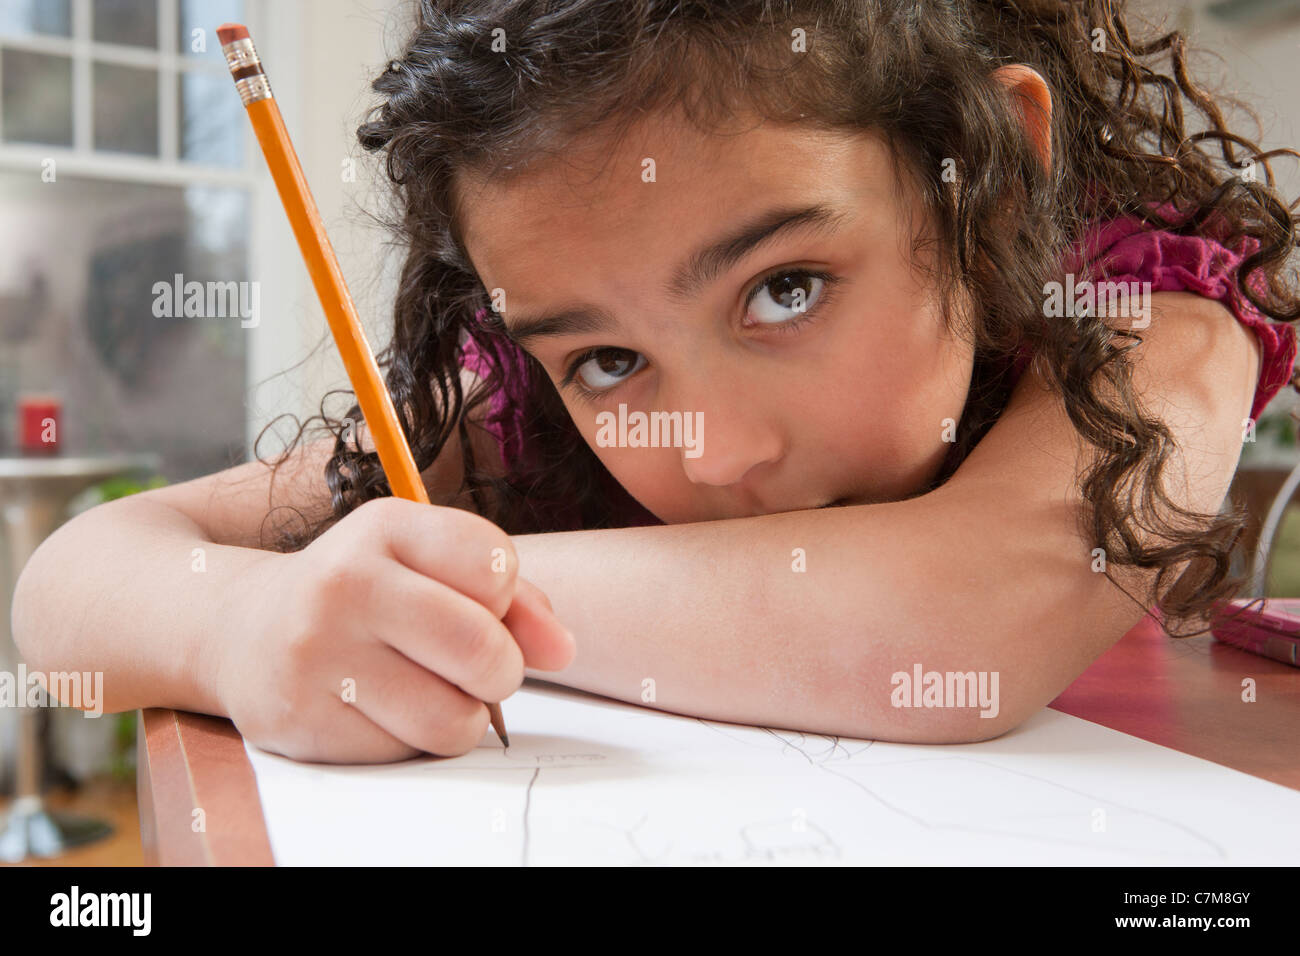 Portrait of a Hispanic girl drawing pictures - Stock Image